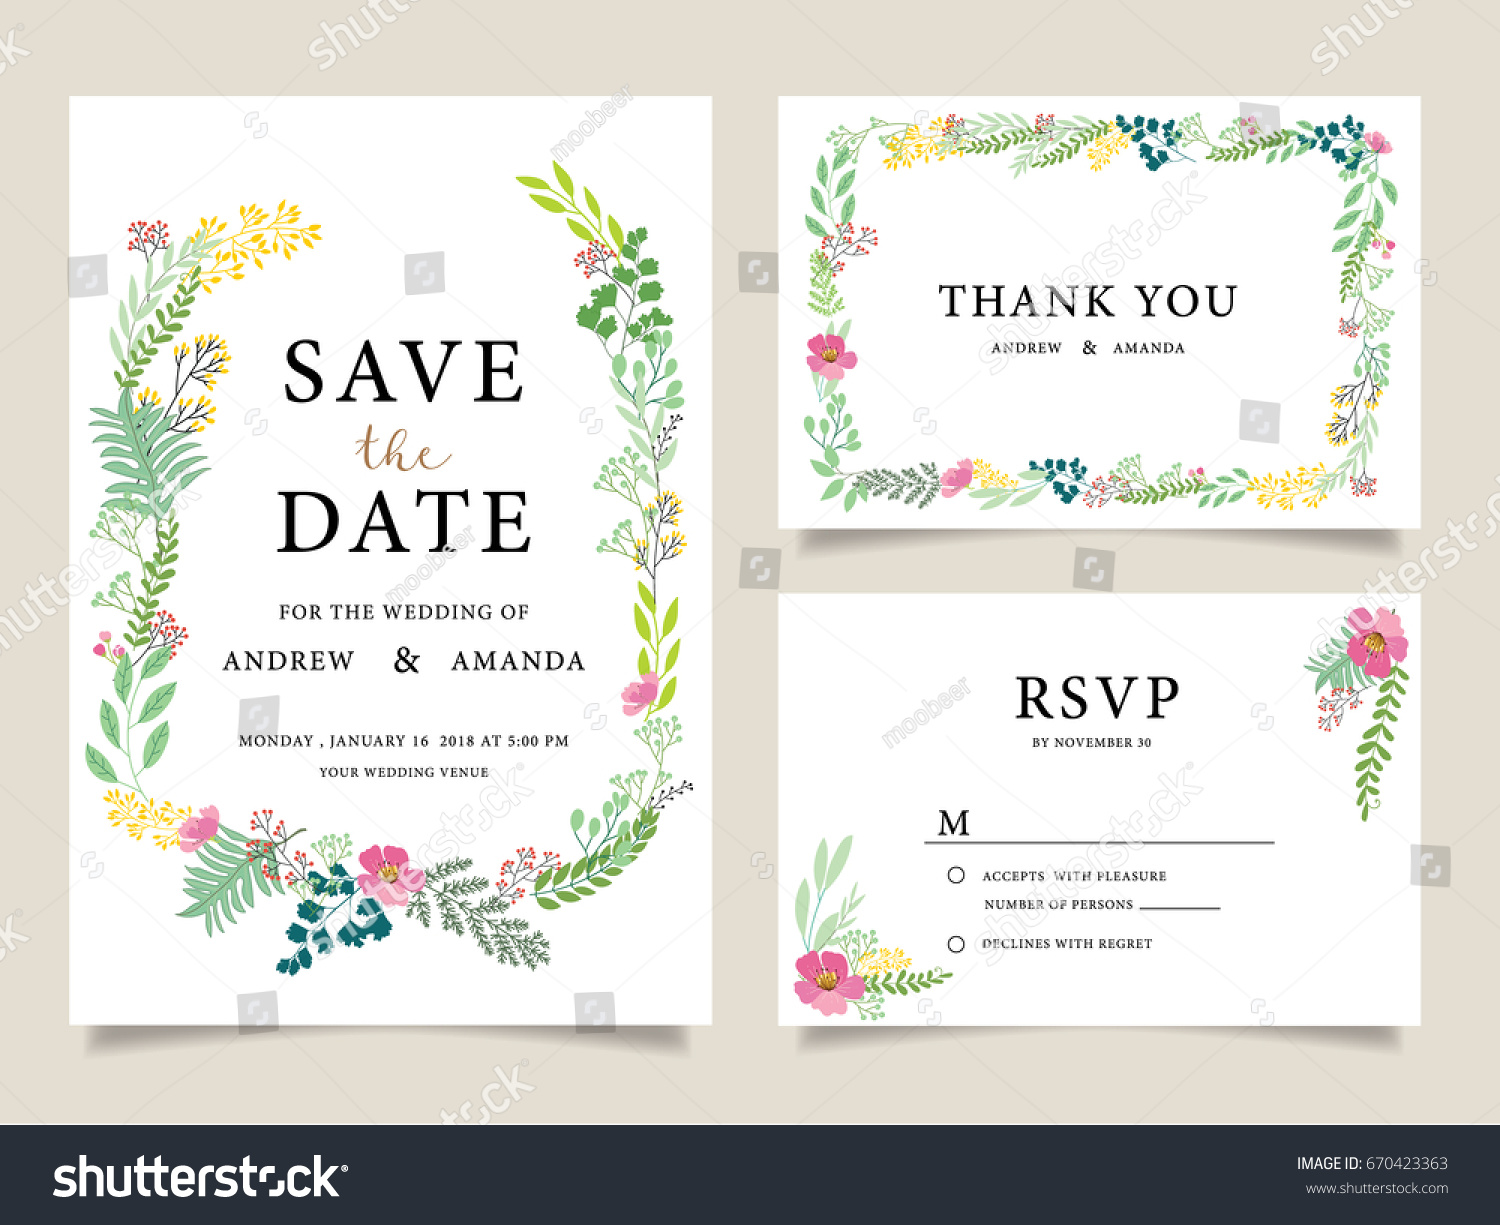 Wedding invitation card template text stock vector 670423363 wedding invitation card template text stock vector 670423363 shutterstock stopboris Images